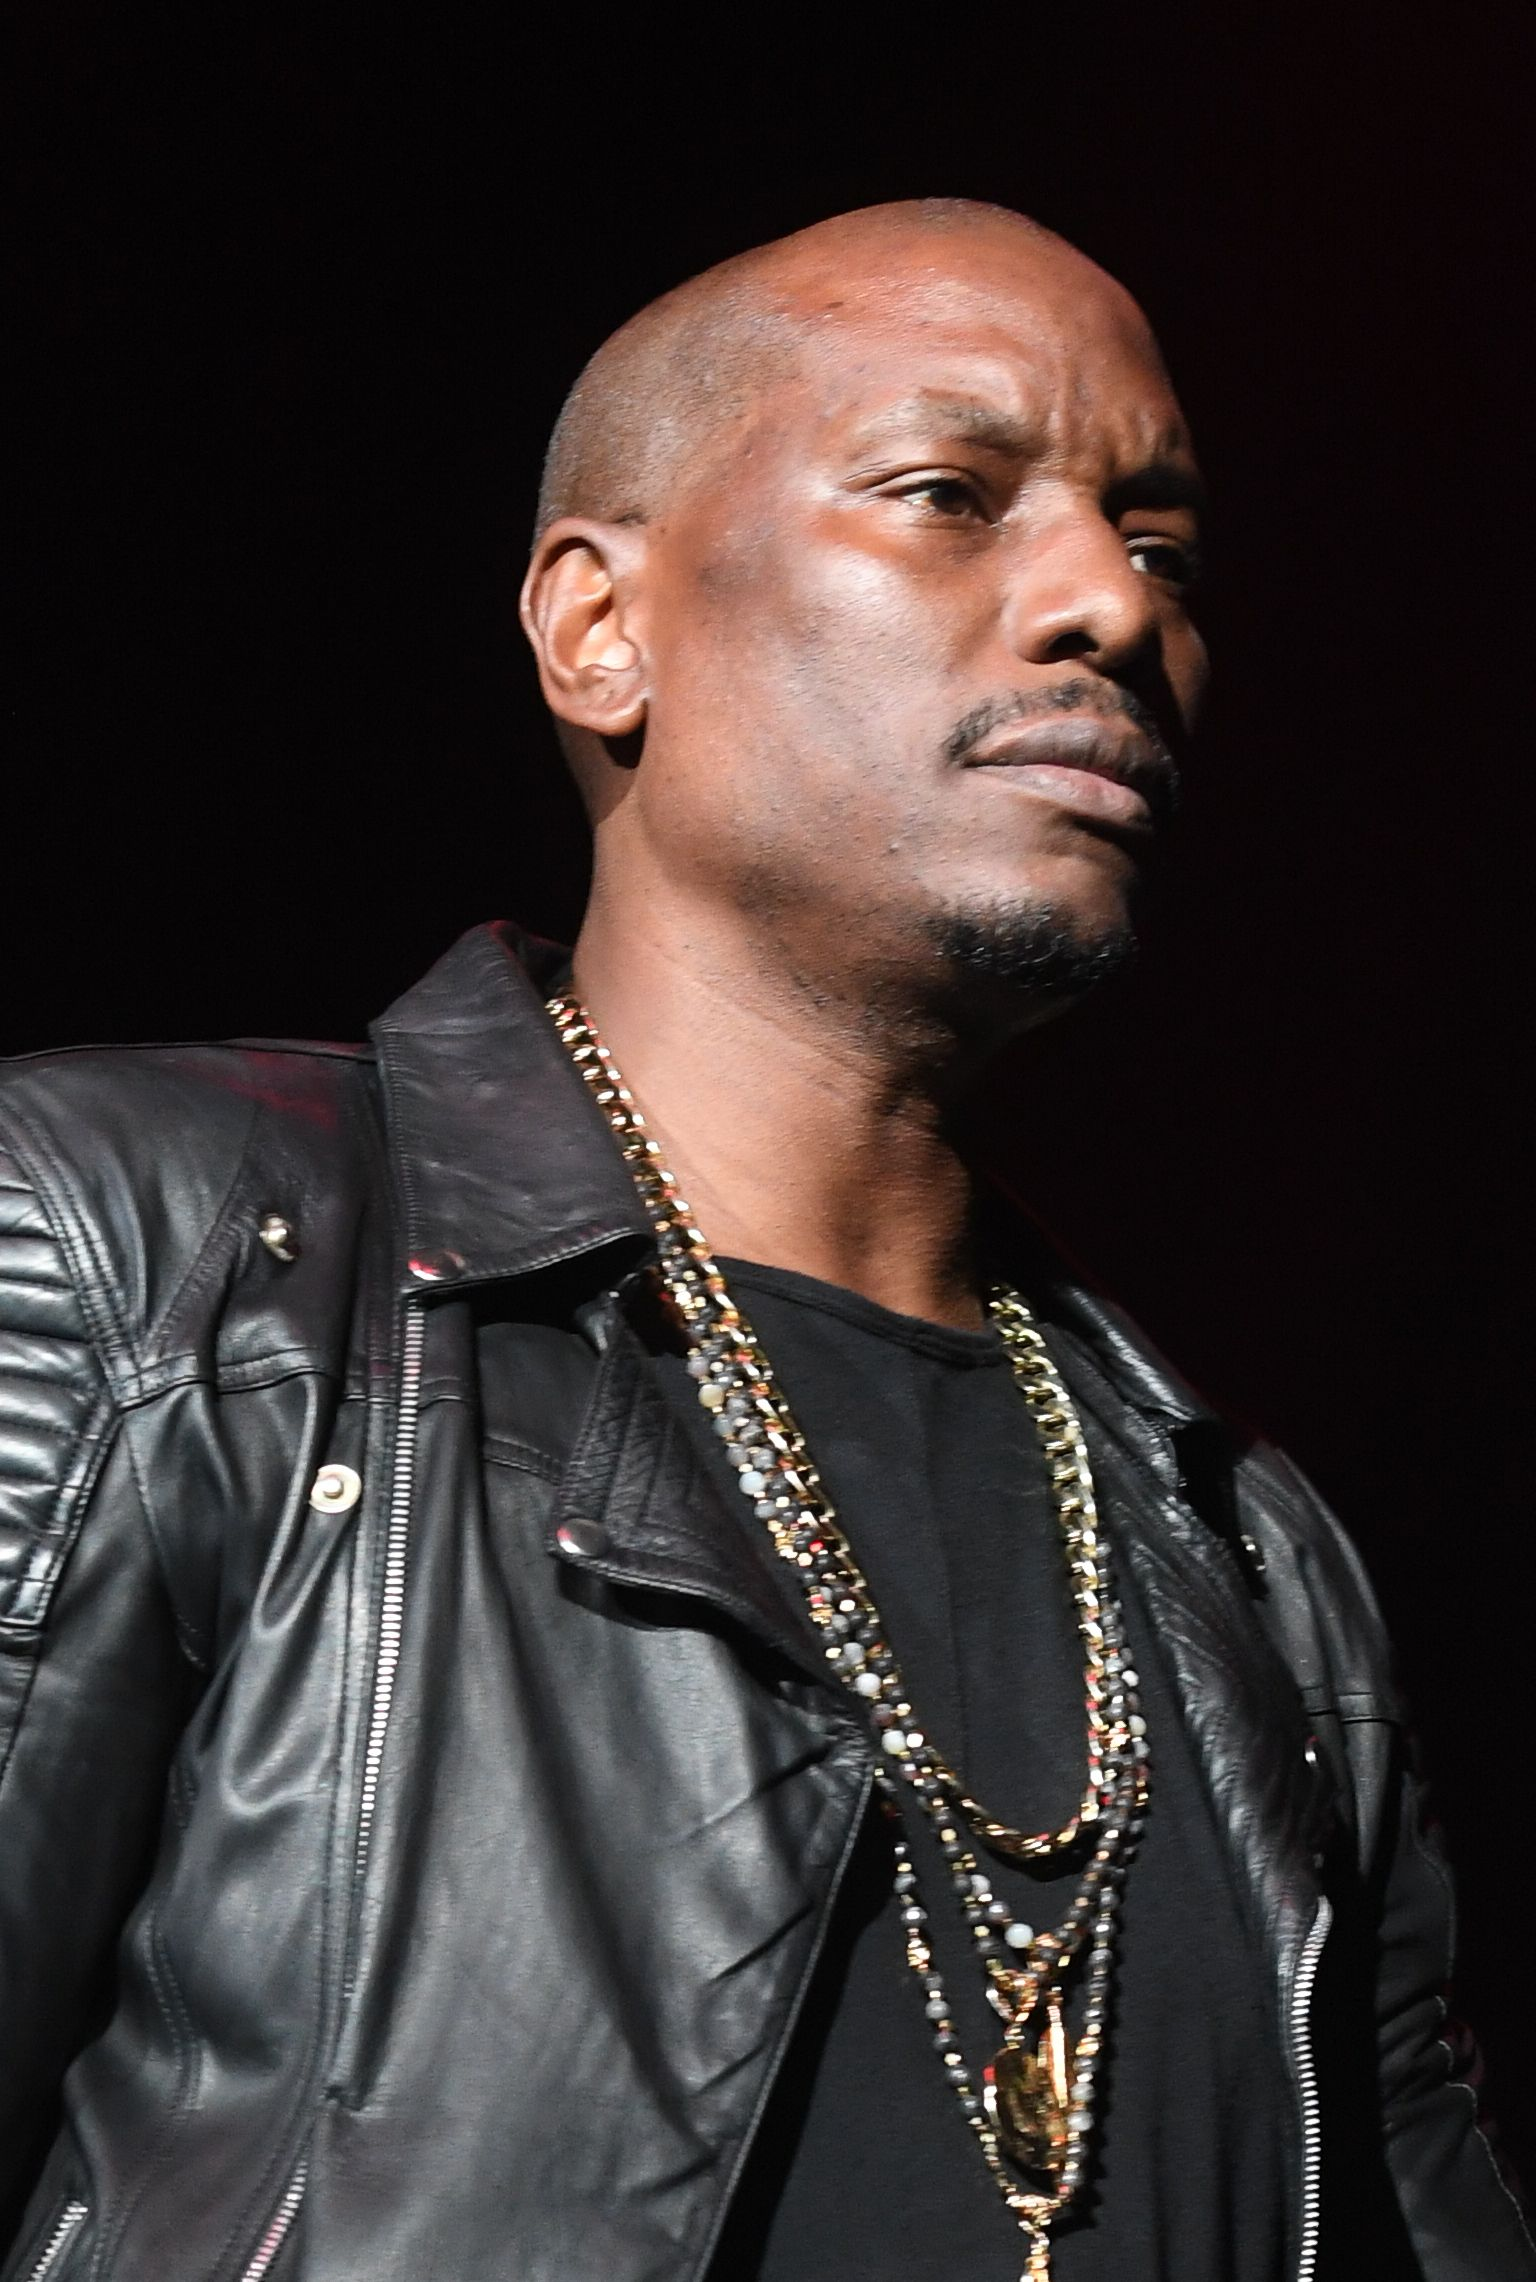 Tyrese Gibson onstage in concert on October 28, 2017 in Atlanta. │Photo: Getty Images